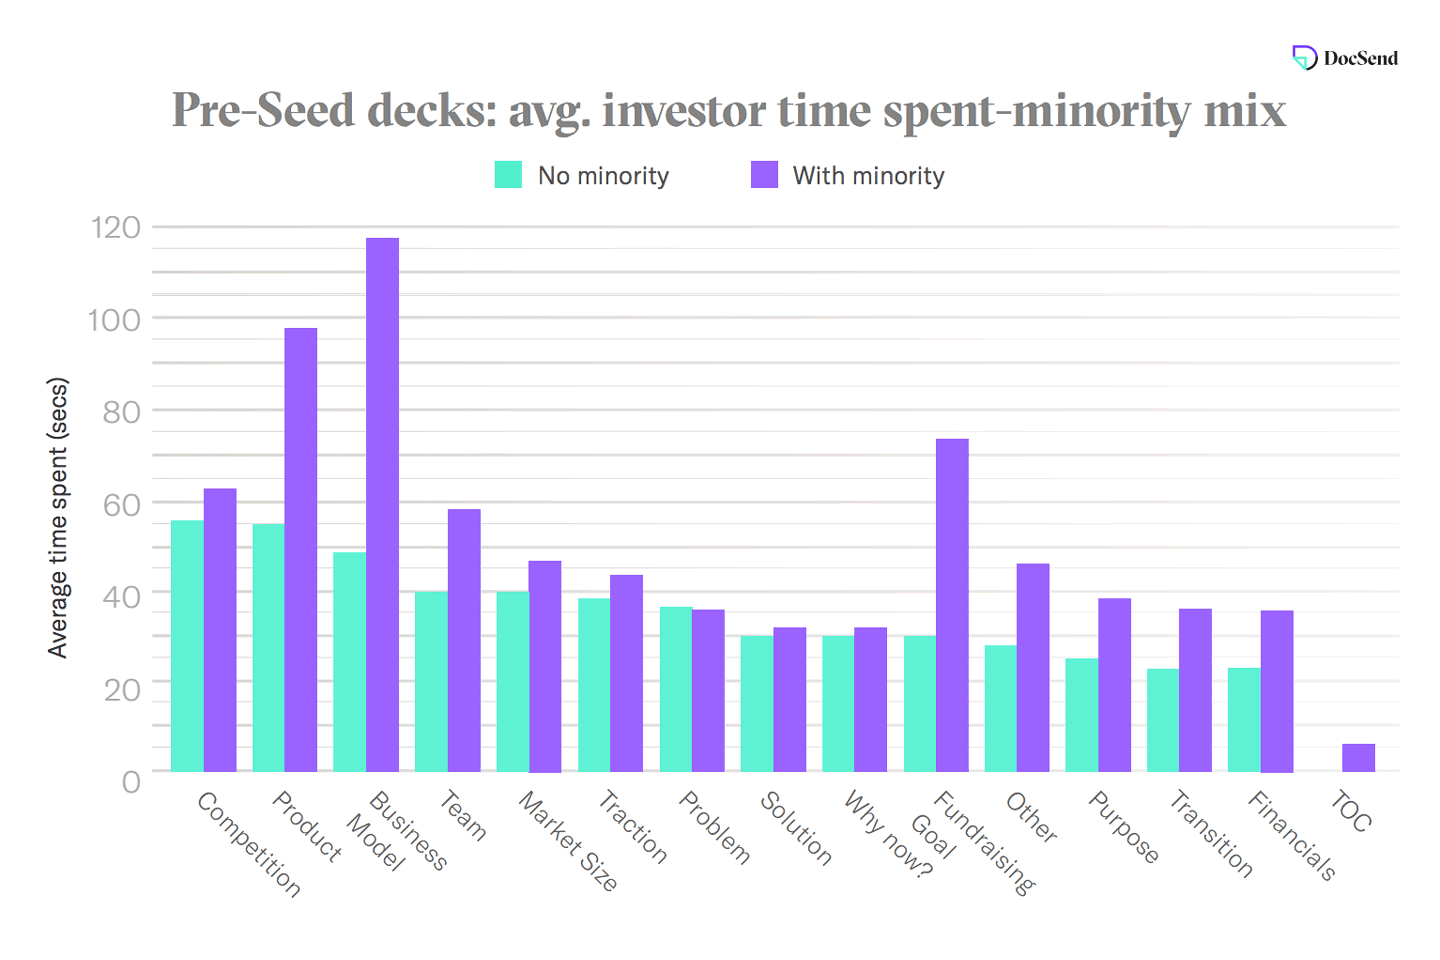 Bar graph showing average investor time spent on seed decks based on minority mix